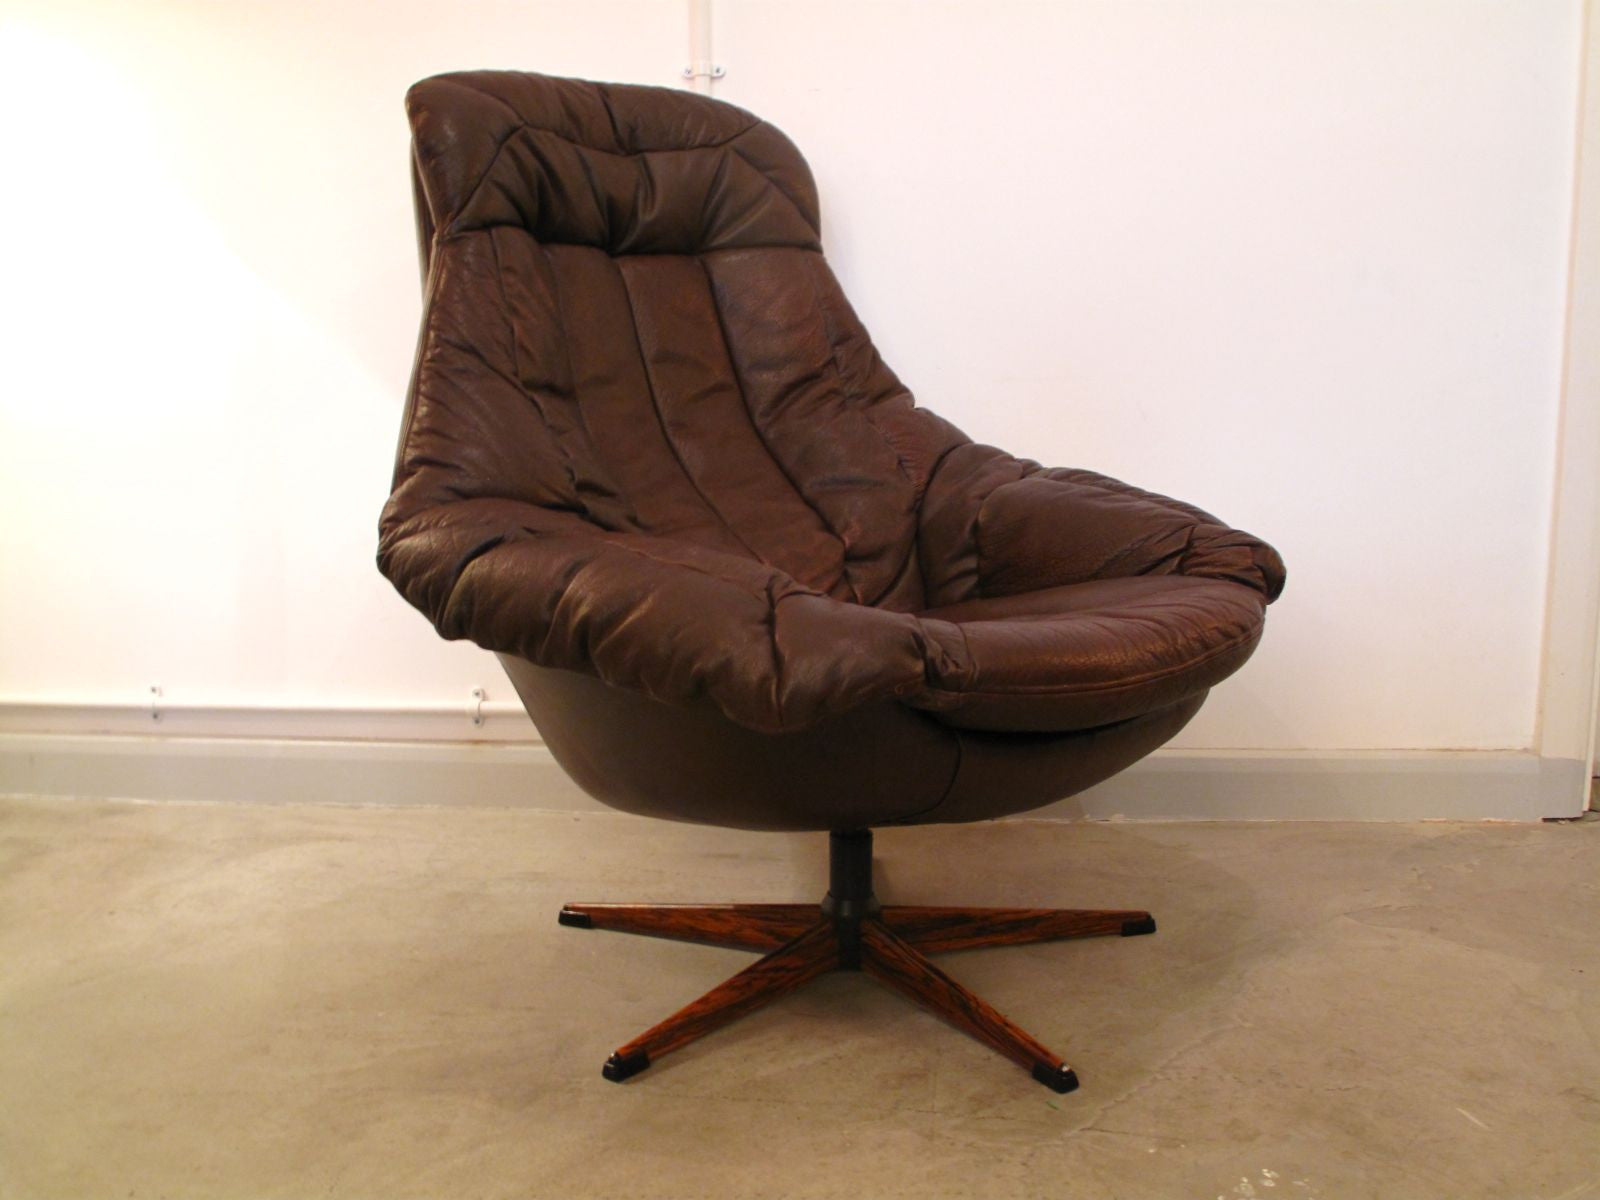 Bucket chair no. 2 by H.W. Klein